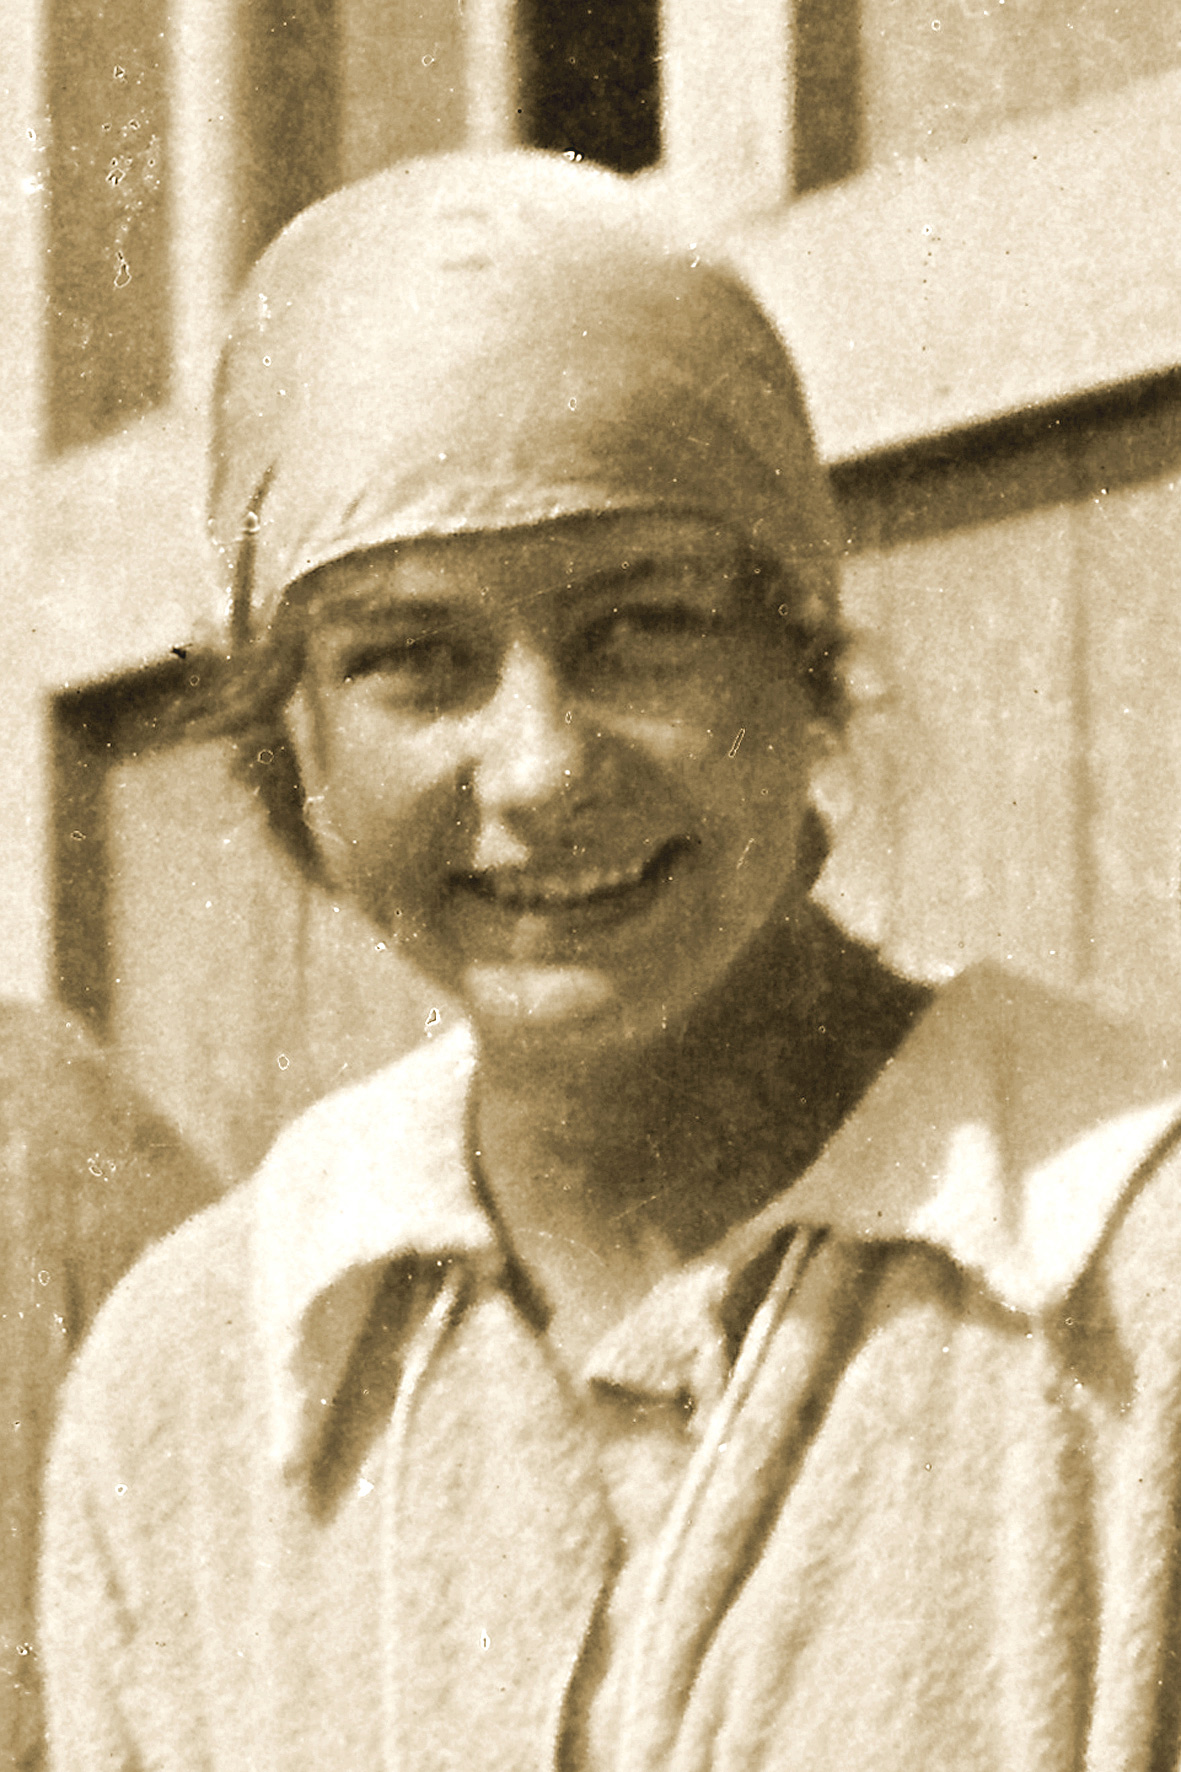 Stefanie Fryland Clausen - Olympic Gold Winner - 1920